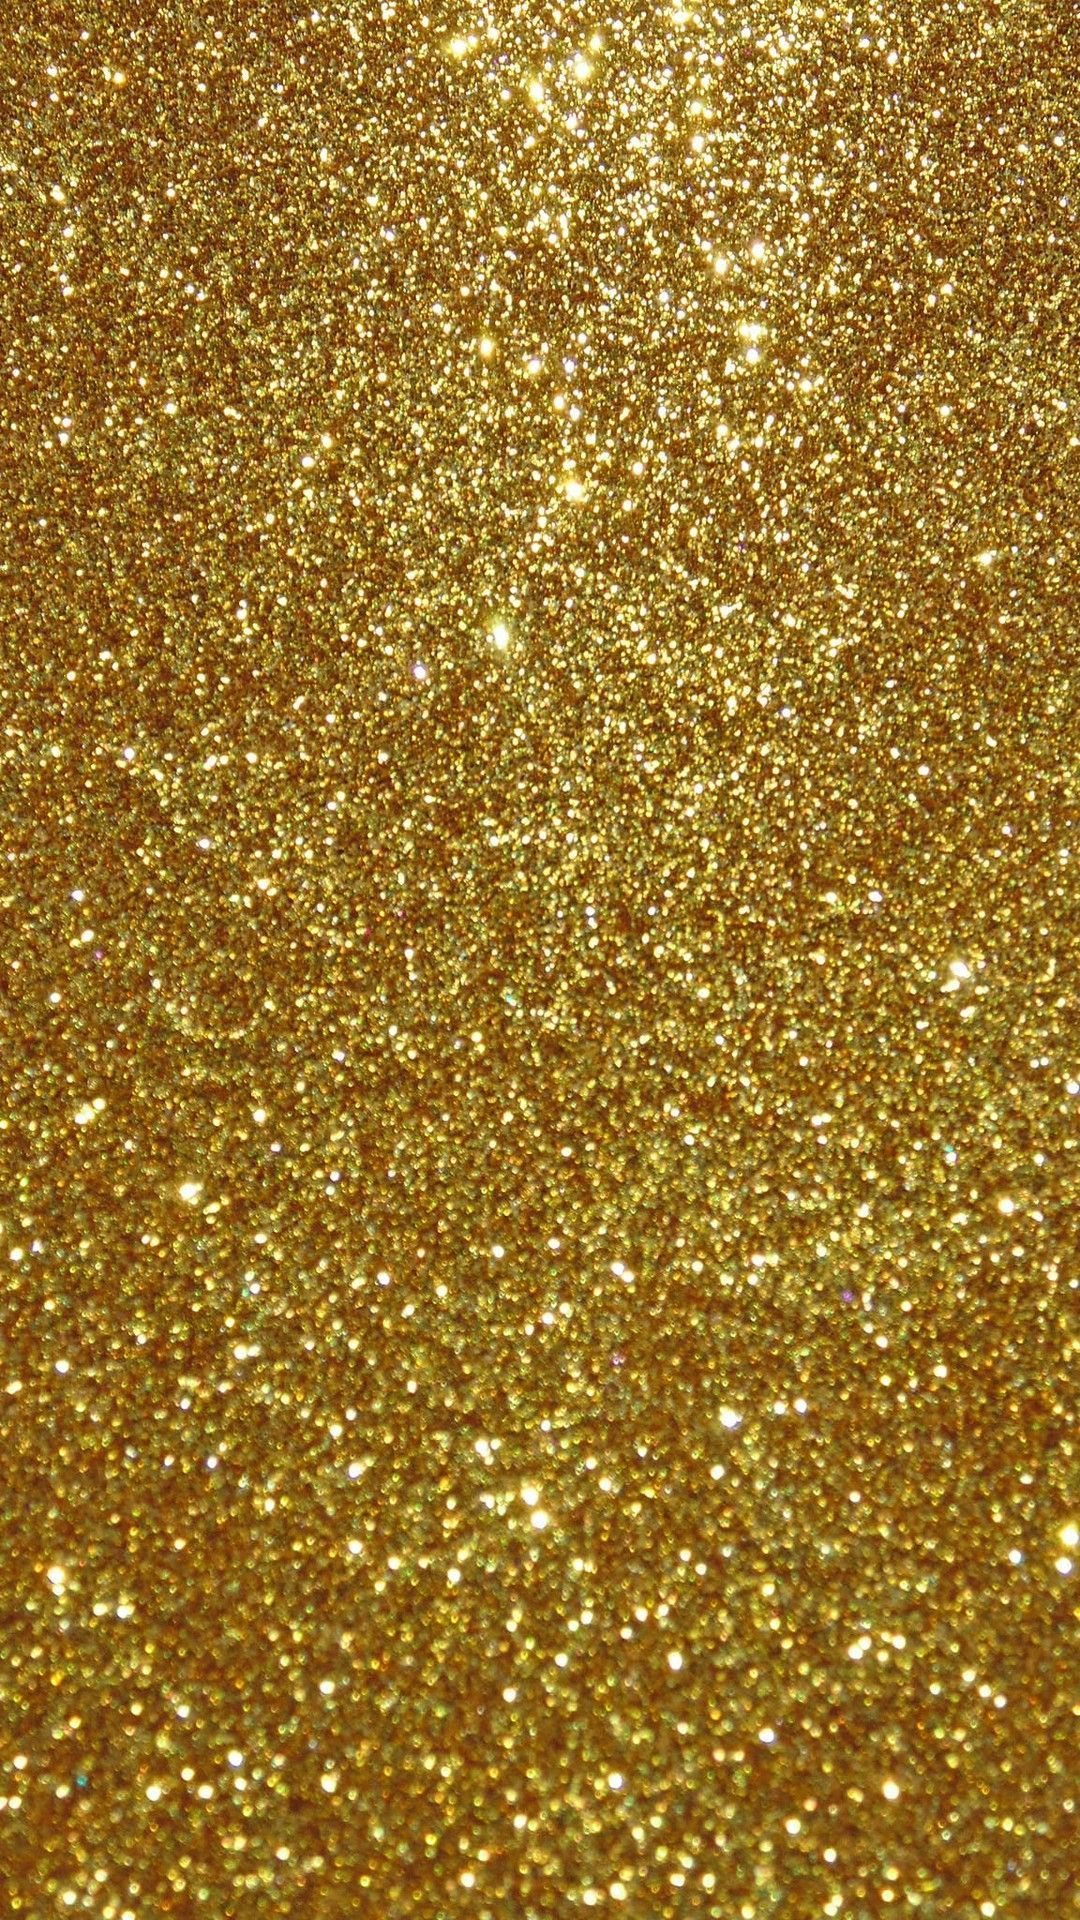 Gold Image Hupages Download Iphone Wallpapers In 2020 Gold Wallpaper Iphone Gold Wallpaper Glitter Wallpaper